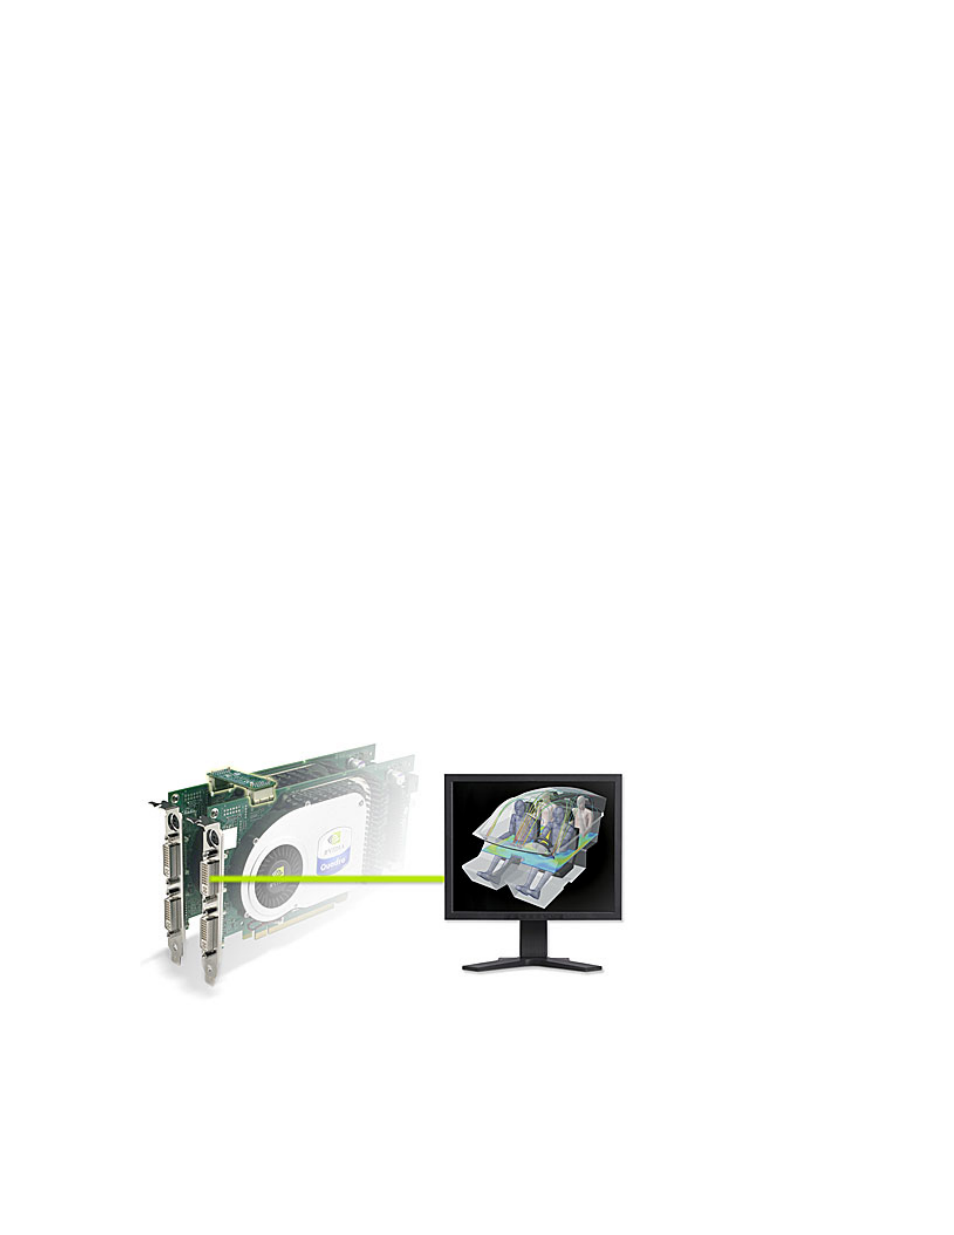 Nvidia Quadro User Manual | 9 pages